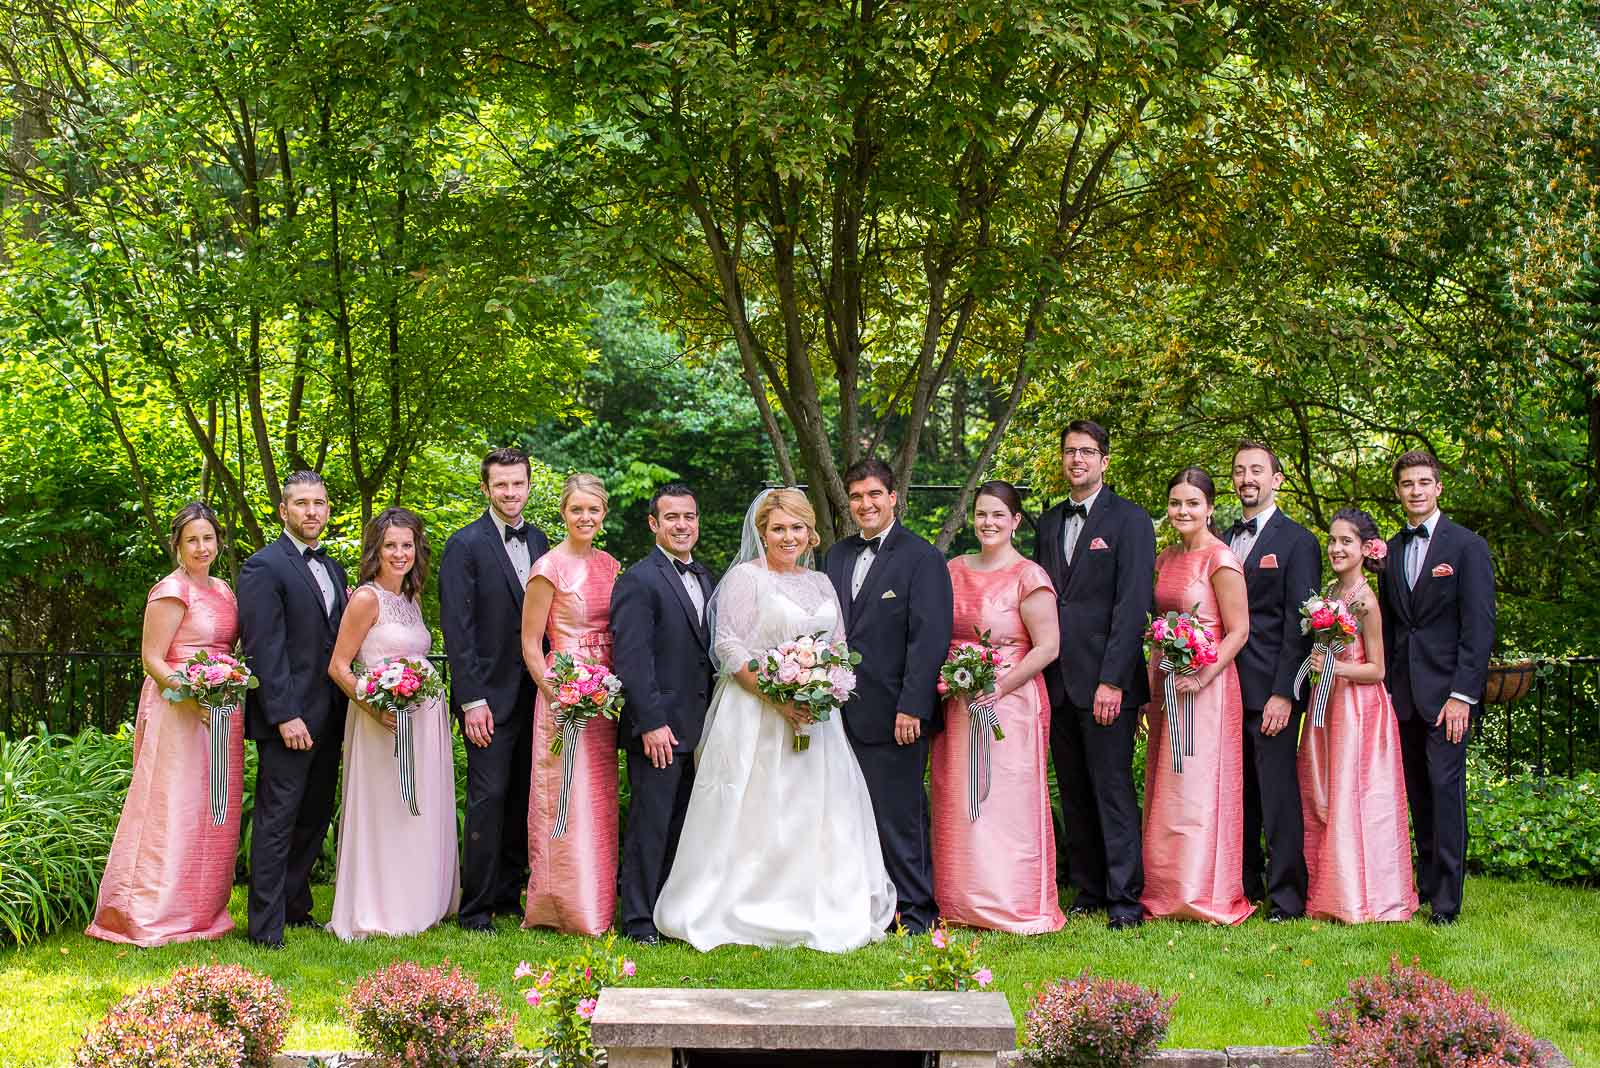 eric_and_christy_photographers_blog_wedding_emilypeter-24